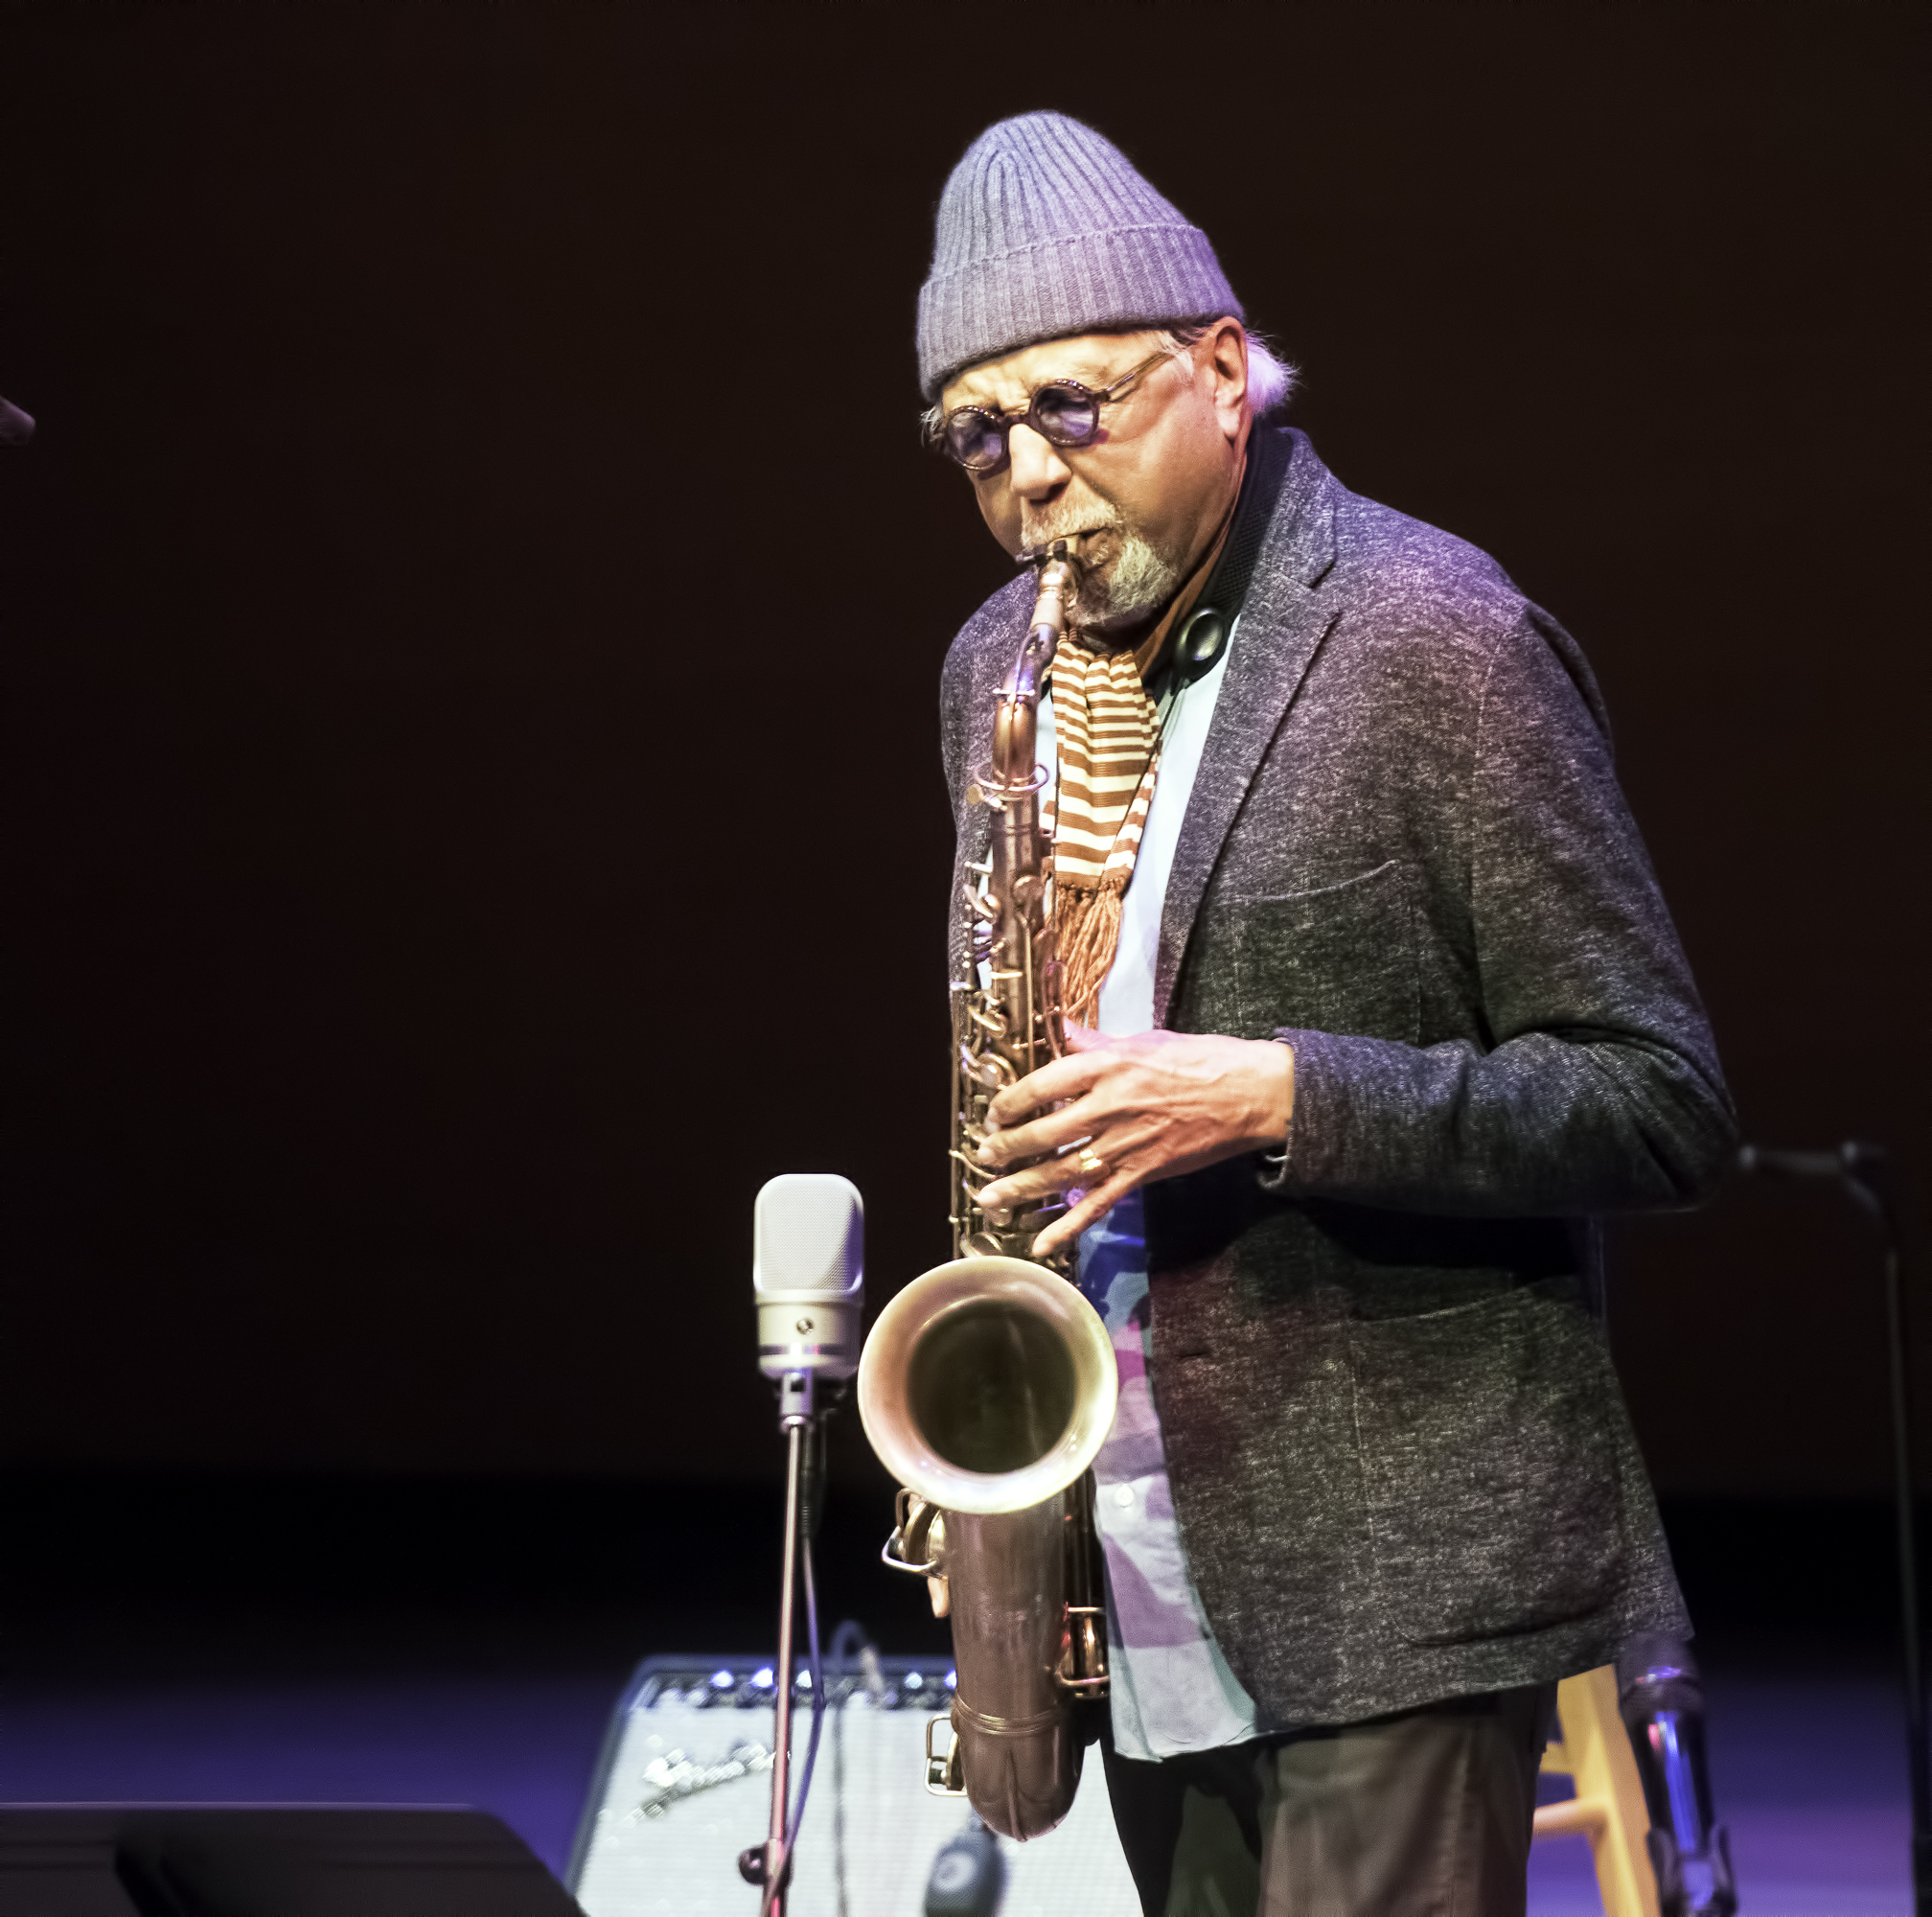 Charles Lloyd with Quartet at the Musical Instrument Museum (MIM) Phoenix